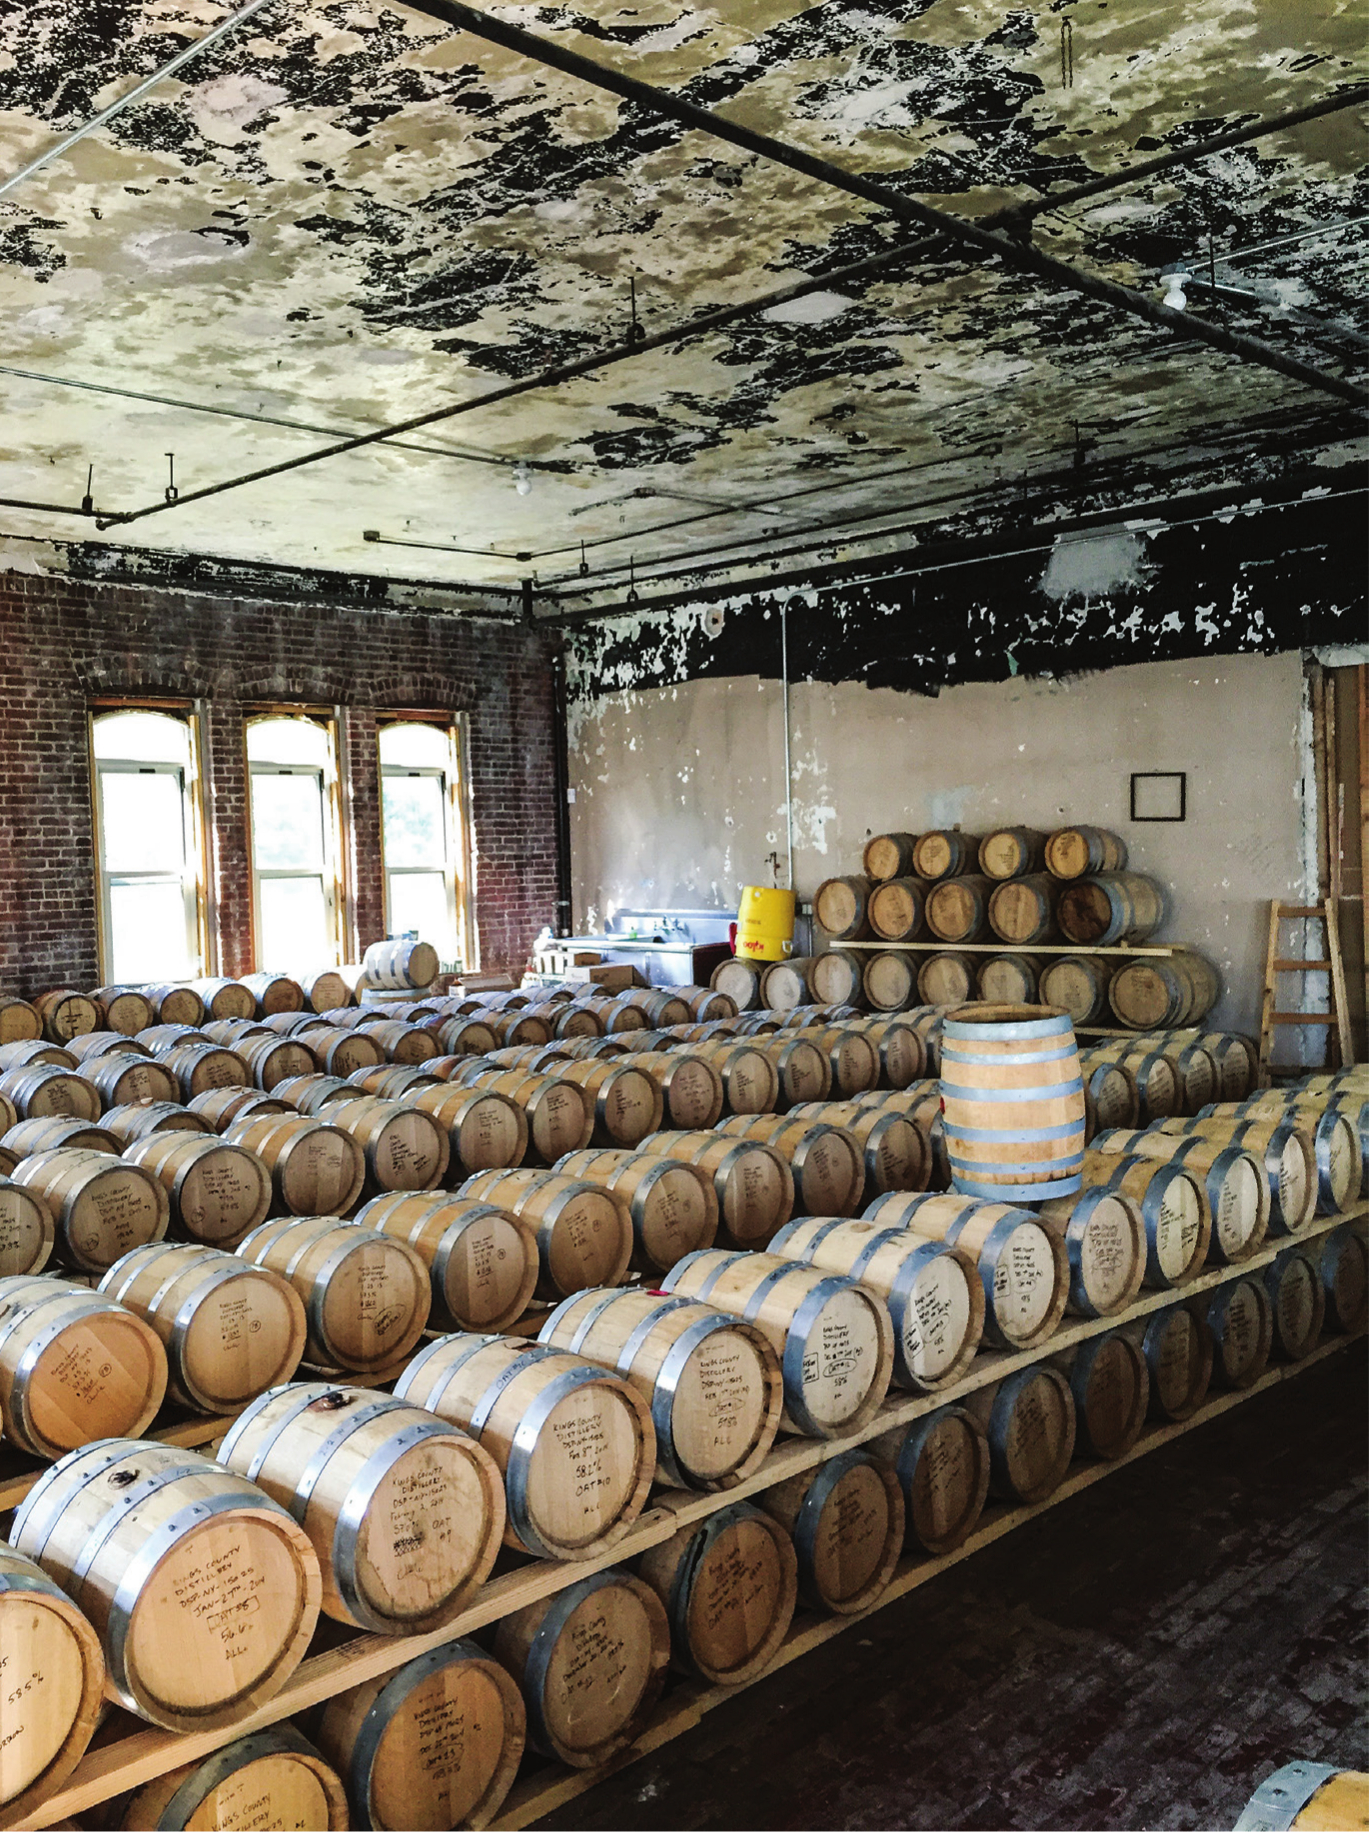 Kings County Distillery Barrel Room. Photo by   Valery Rizzo